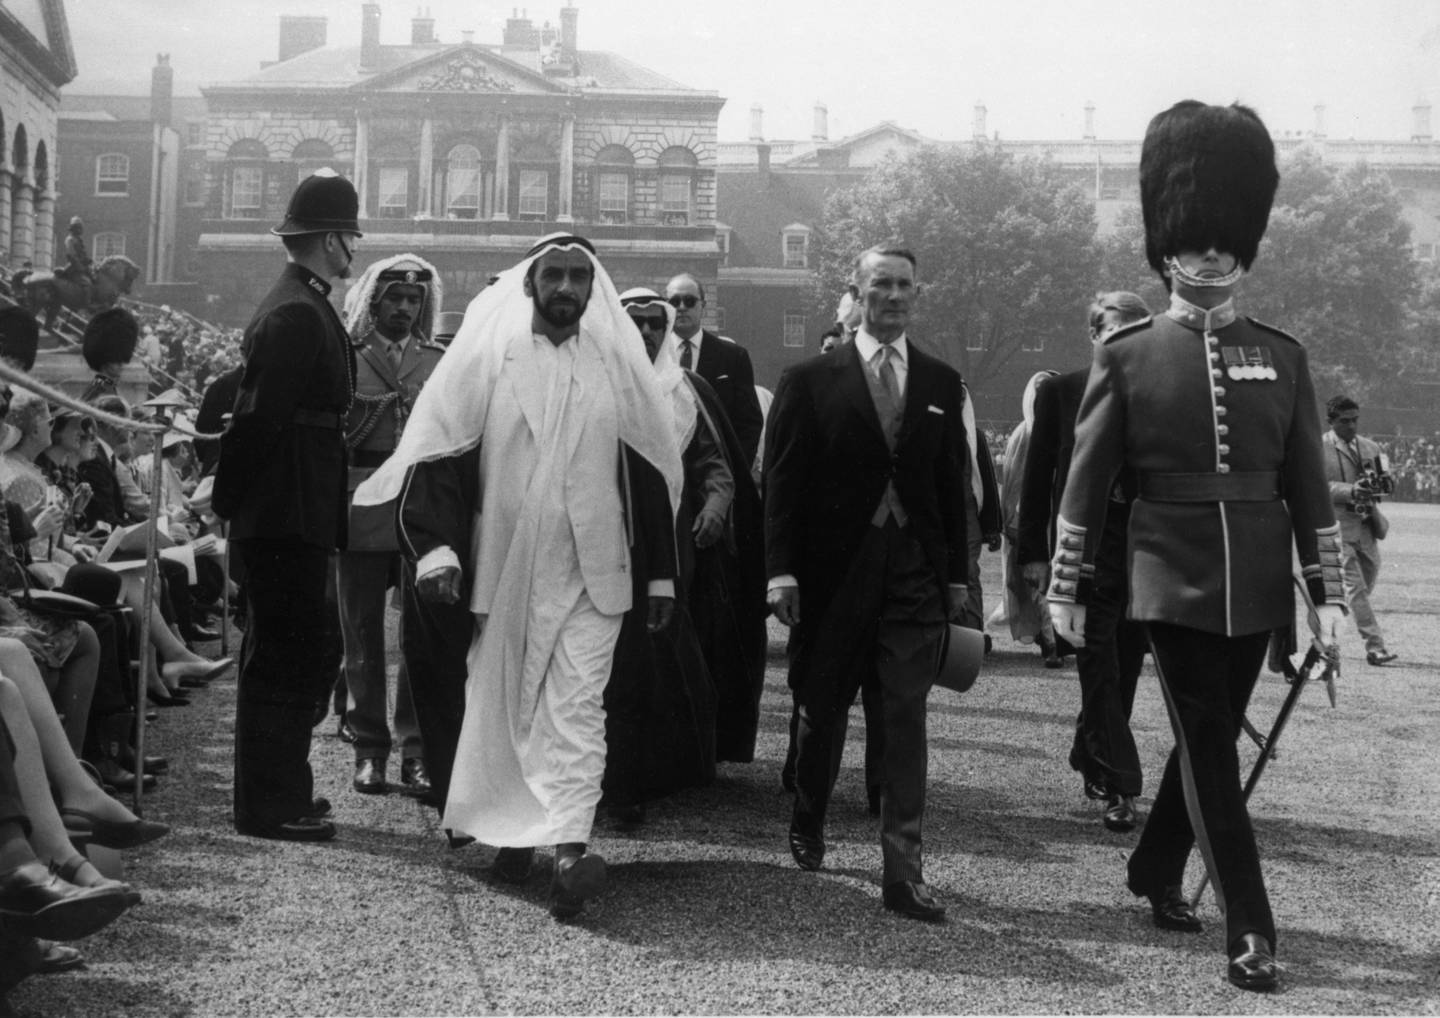 Sheik Khalifa bin Zayed Al Nahyan, President of the United Arab Emirates in Arab dress being escorted to his seat in Horse Guards Parade, London during the Trooping of the Colour Ceremony on June 14, 1969. (AP Photo/Str)